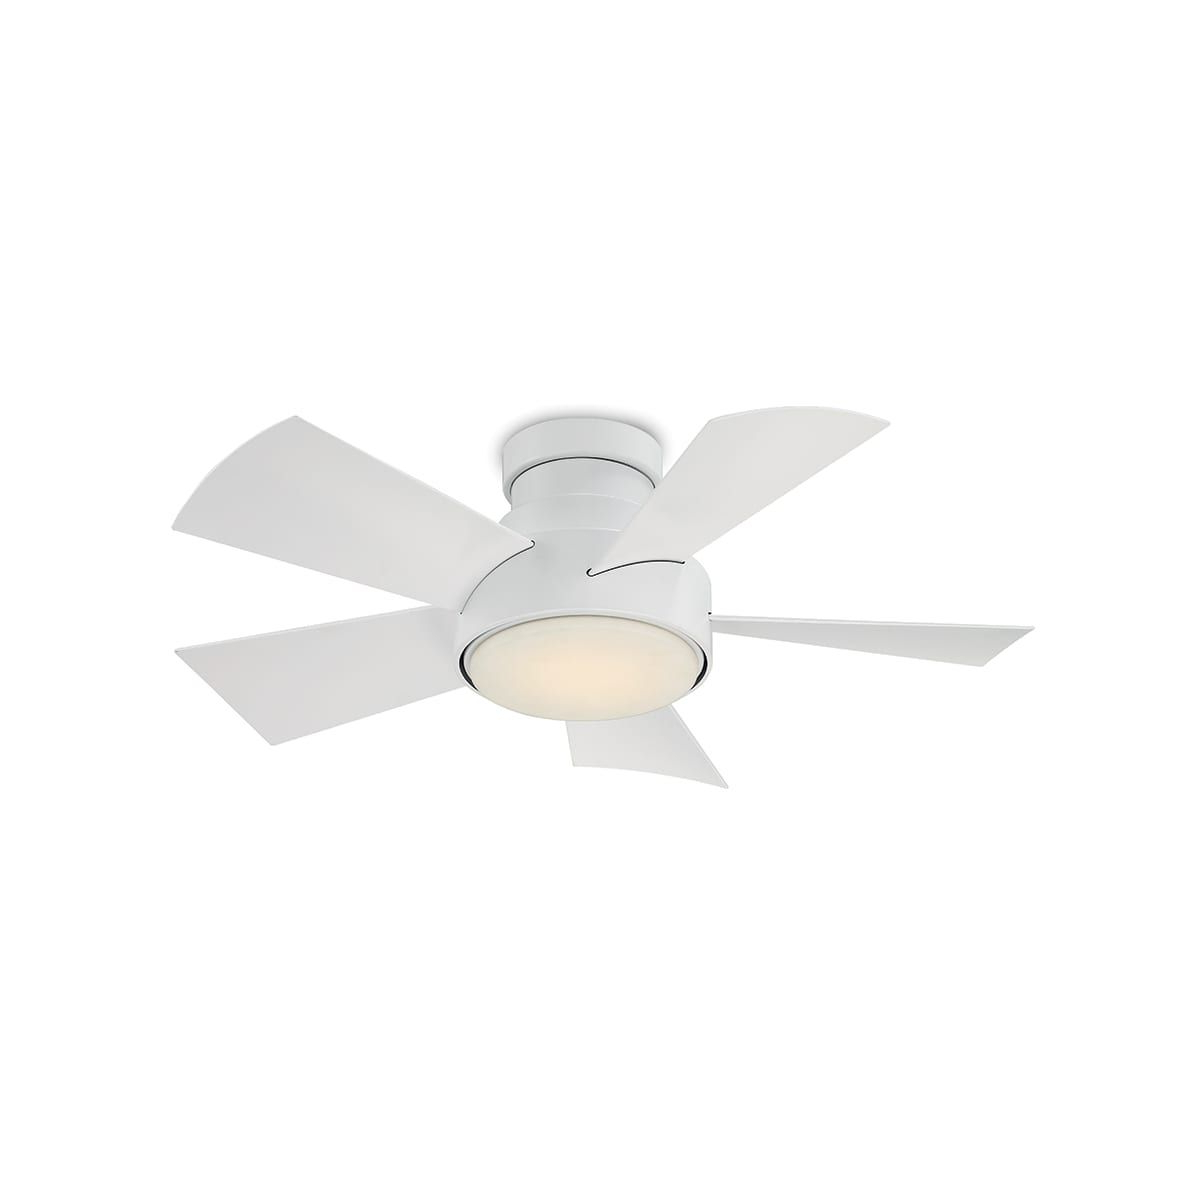 Eliora 5 Blade Ceiling Fans Inside Latest Minkaaire Supra 32 In 2019 Lake House Ceiling Fan Blades (View 14 of 20)